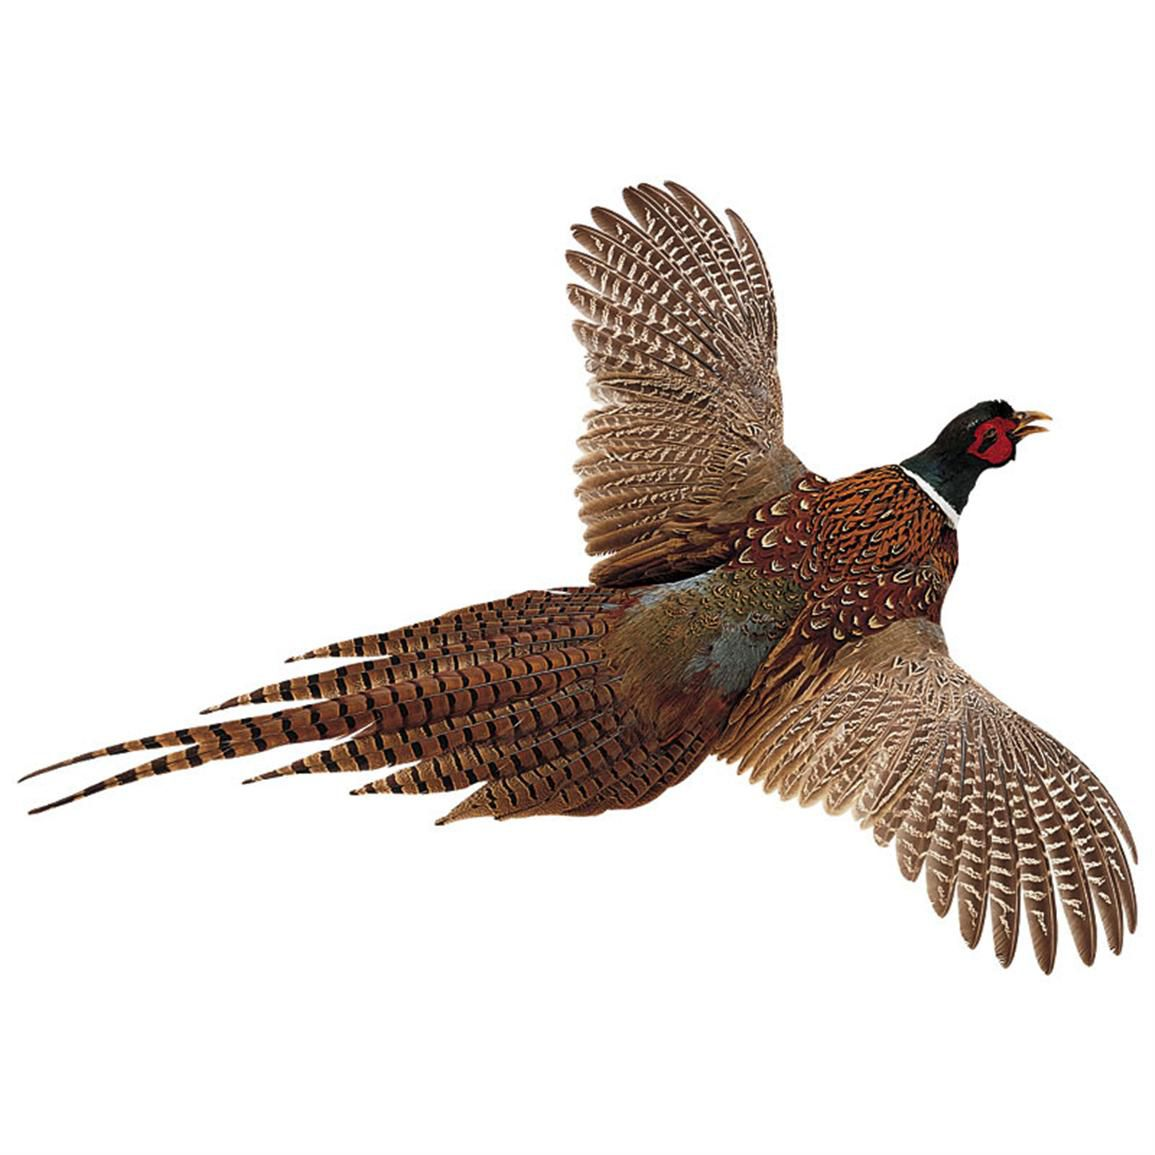 Pheasants can run at the speed of 8 to 10 miles per hour and fly at the speed of 35 to 45 miles per hour. Pheasants are also able to swim.